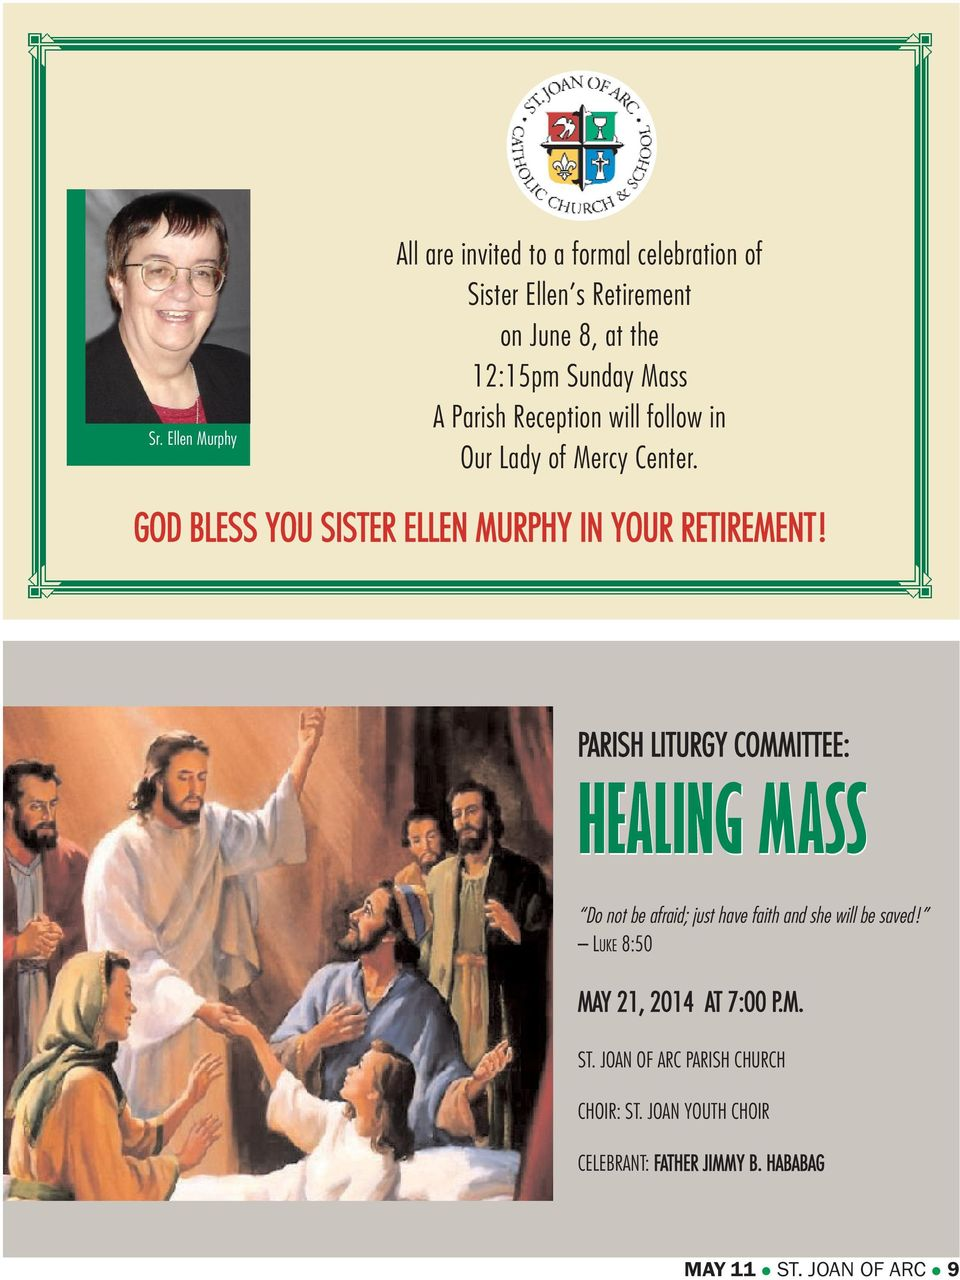 PARISH LITURGY COMMITTEE: HEALING MASS Do not be afraid; just have faith and she will be saved!